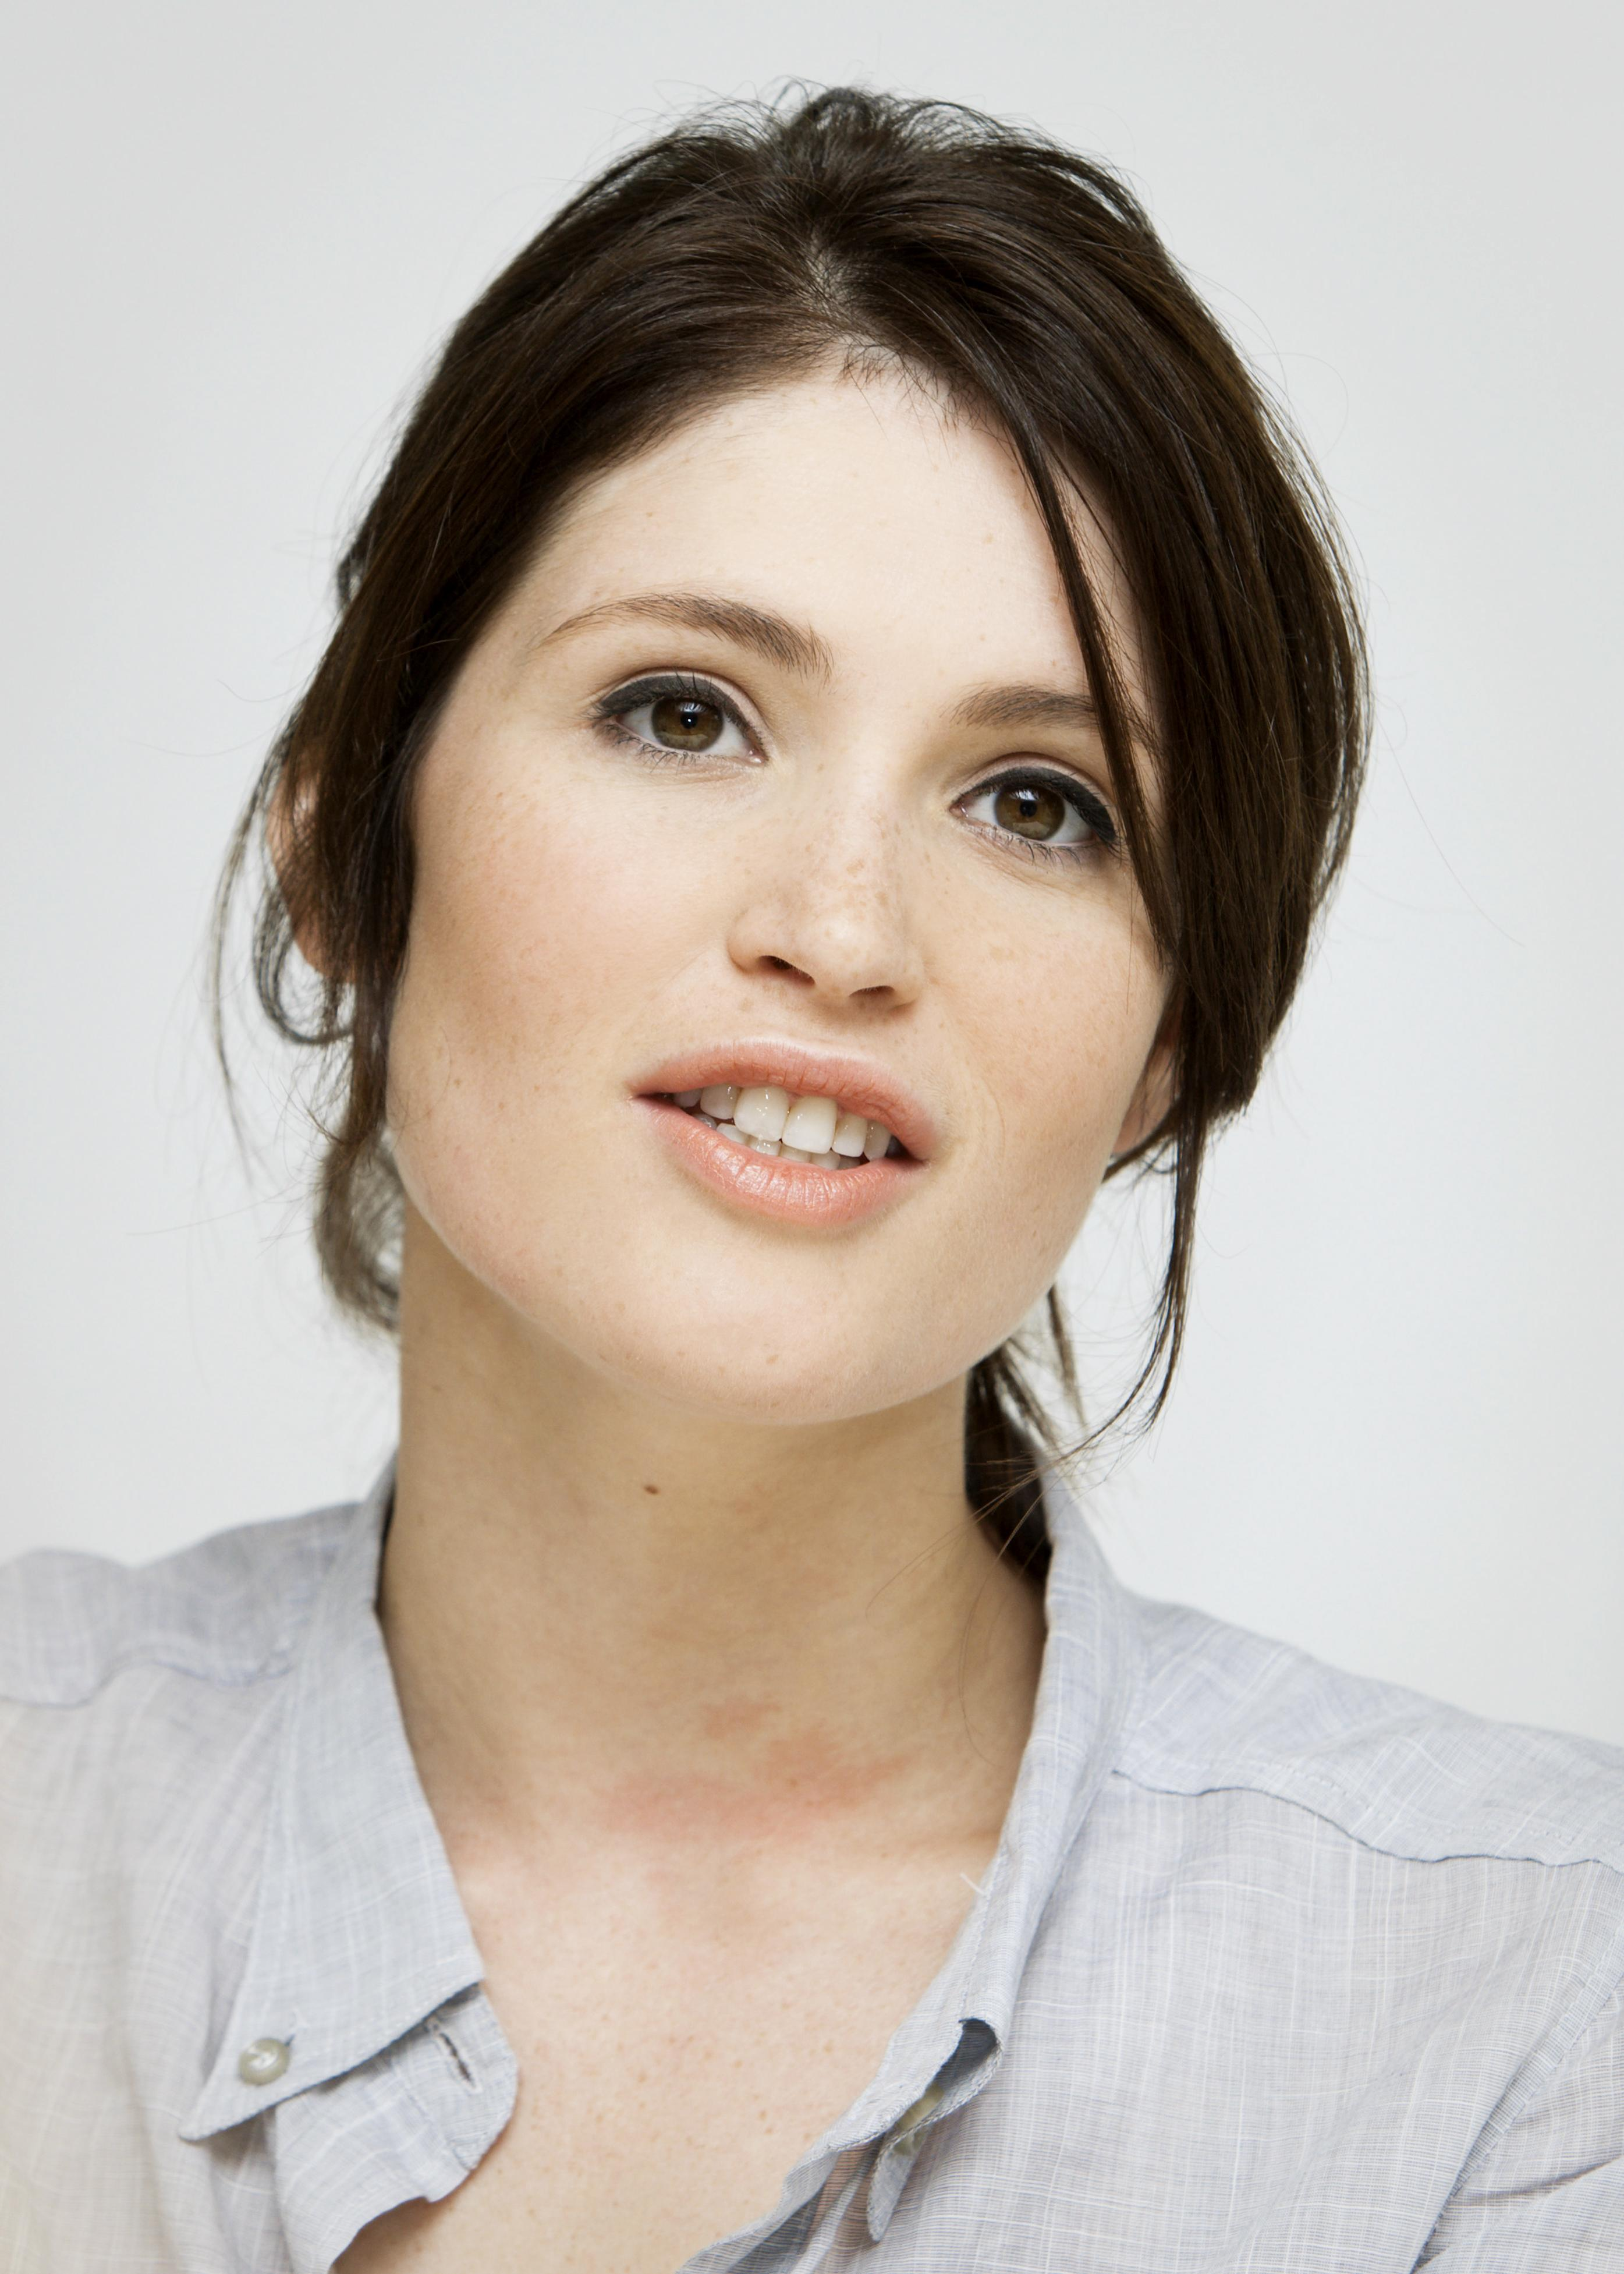 gemma arterton moviesgemma arterton 2016, gemma arterton 2017, gemma arterton wiki, gemma arterton instagram, gemma arterton tumblr gif, gemma arterton movies, gemma arterton james bond, gemma arterton вк, gemma arterton facebook, gemma arterton imdb, gemma arterton 100 streets, gemma arterton fan, gemma arterton кинопоиск, gemma arterton bond, gemma arterton interview, gemma arterton wdw, gemma arterton films, gemma arterton kimdir, gemma arterton hd wallpapers, gemma arterton fashion spot